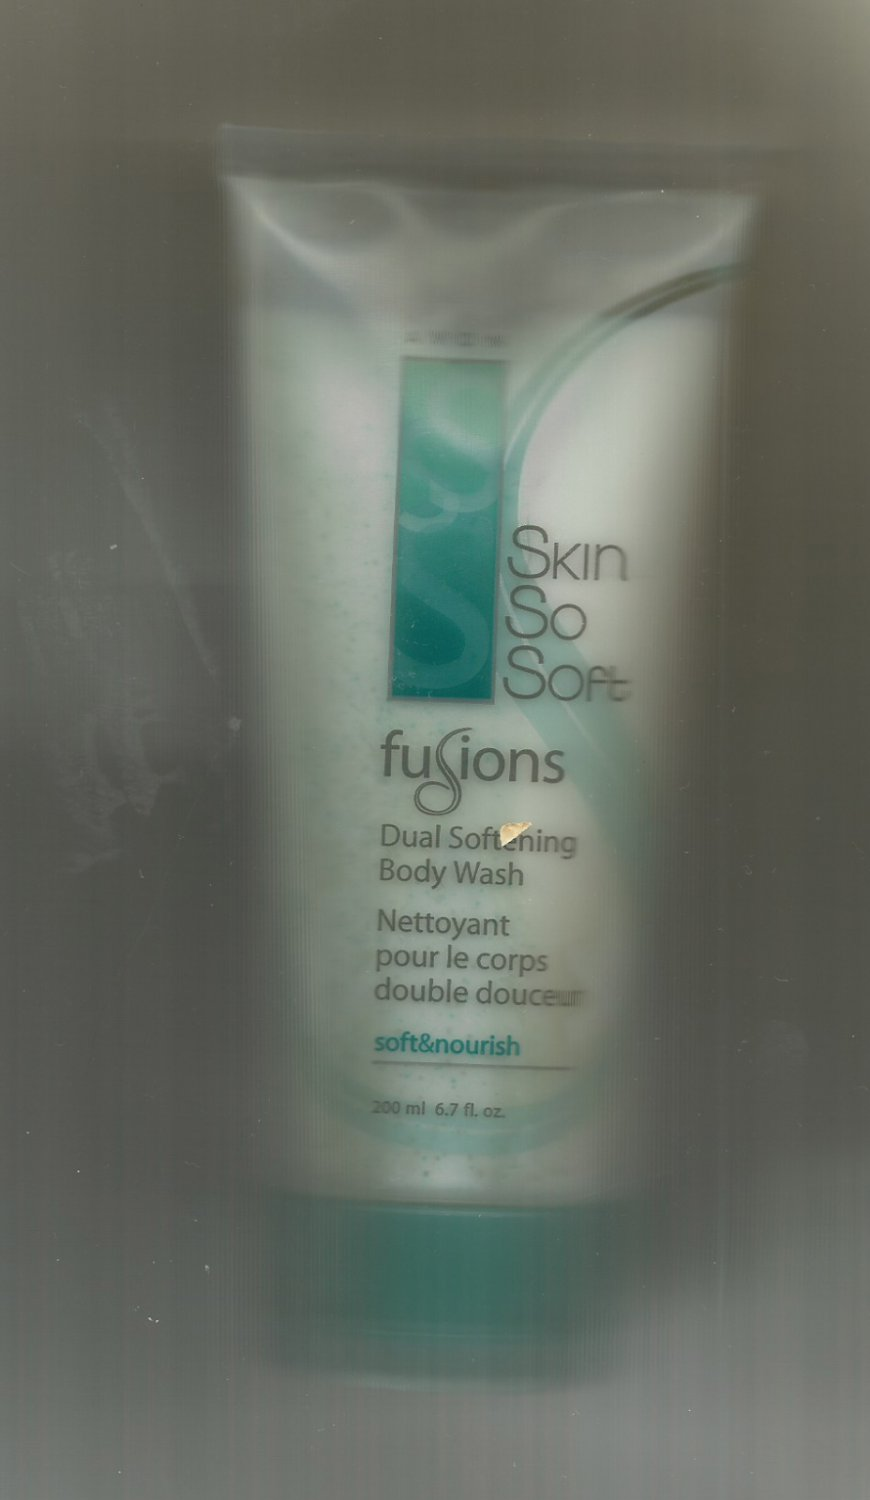 Avon SSS Fusions Softening Dual  Body Wash  Soft & Nourish-Vintage